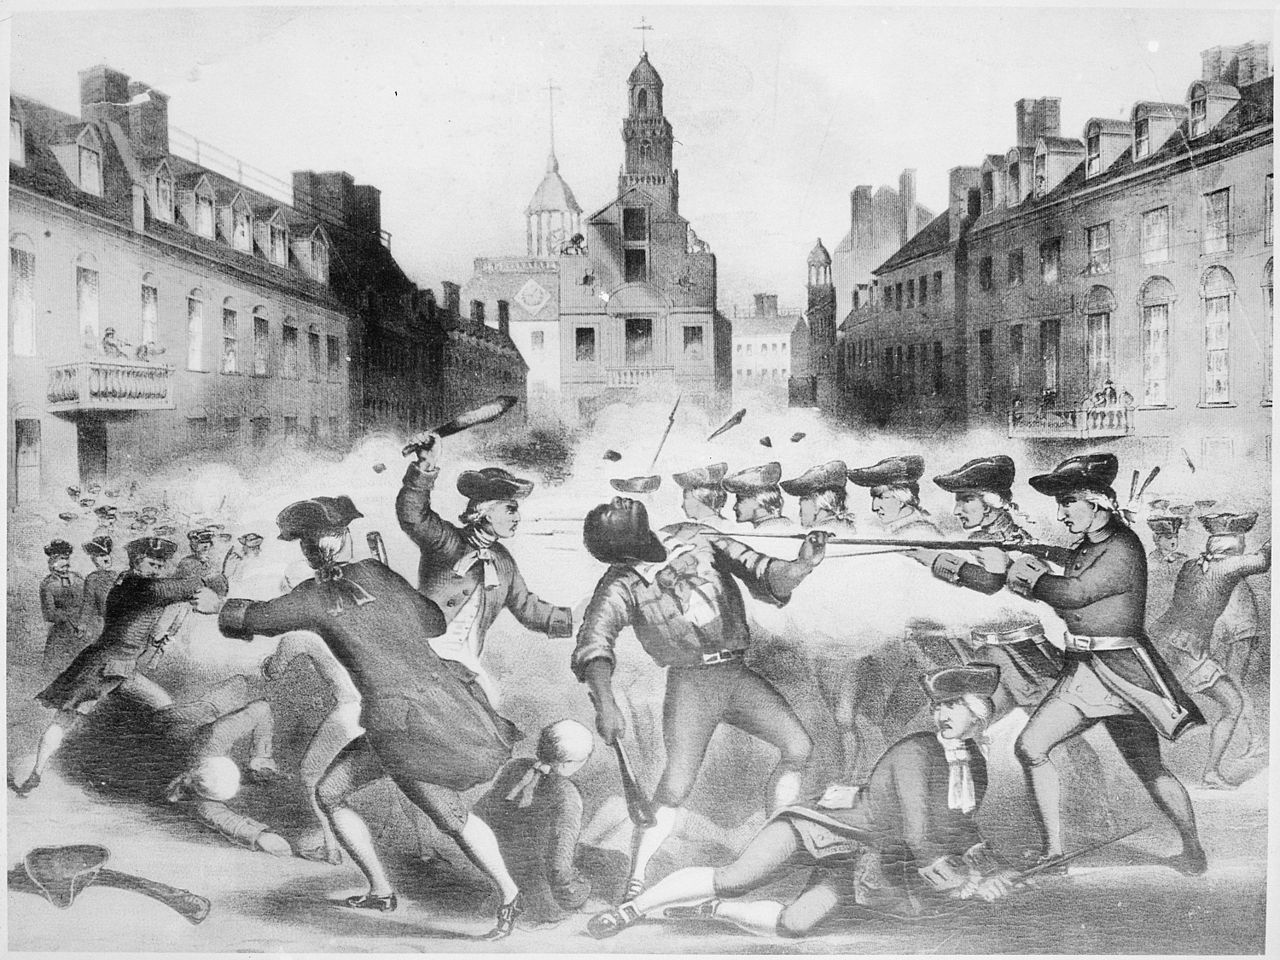 Scene of a fight between colonists with clubs on the left and British soldiers with long guns and bayonets on the right. A black man (Attucks) falls backward while griping a British soldier's long gun at the center of the image.